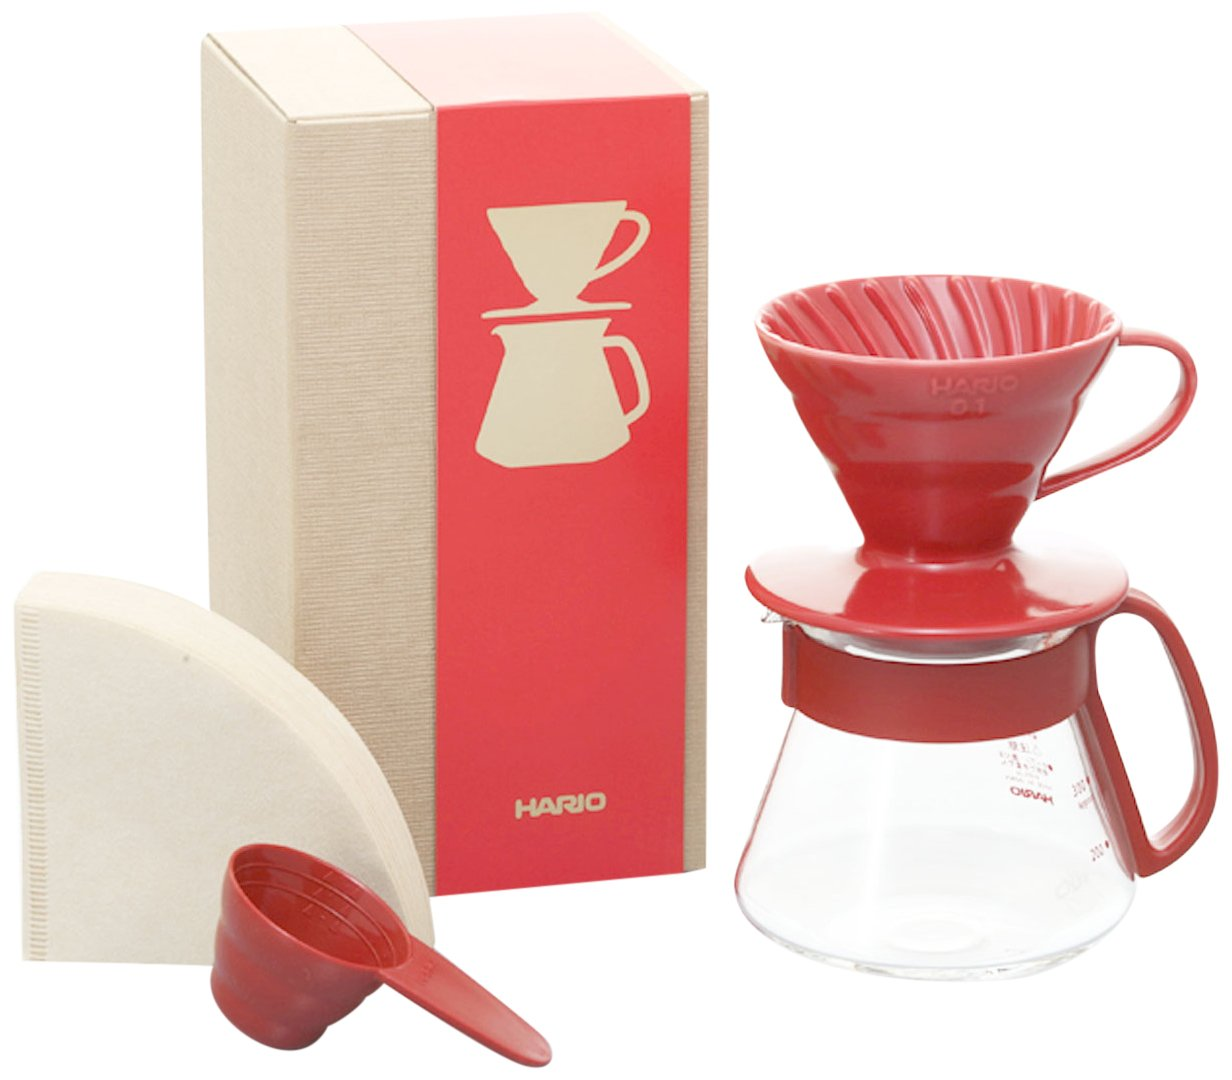 Hario V60 Coffee Dripper and Pot Set, Size 01, Red